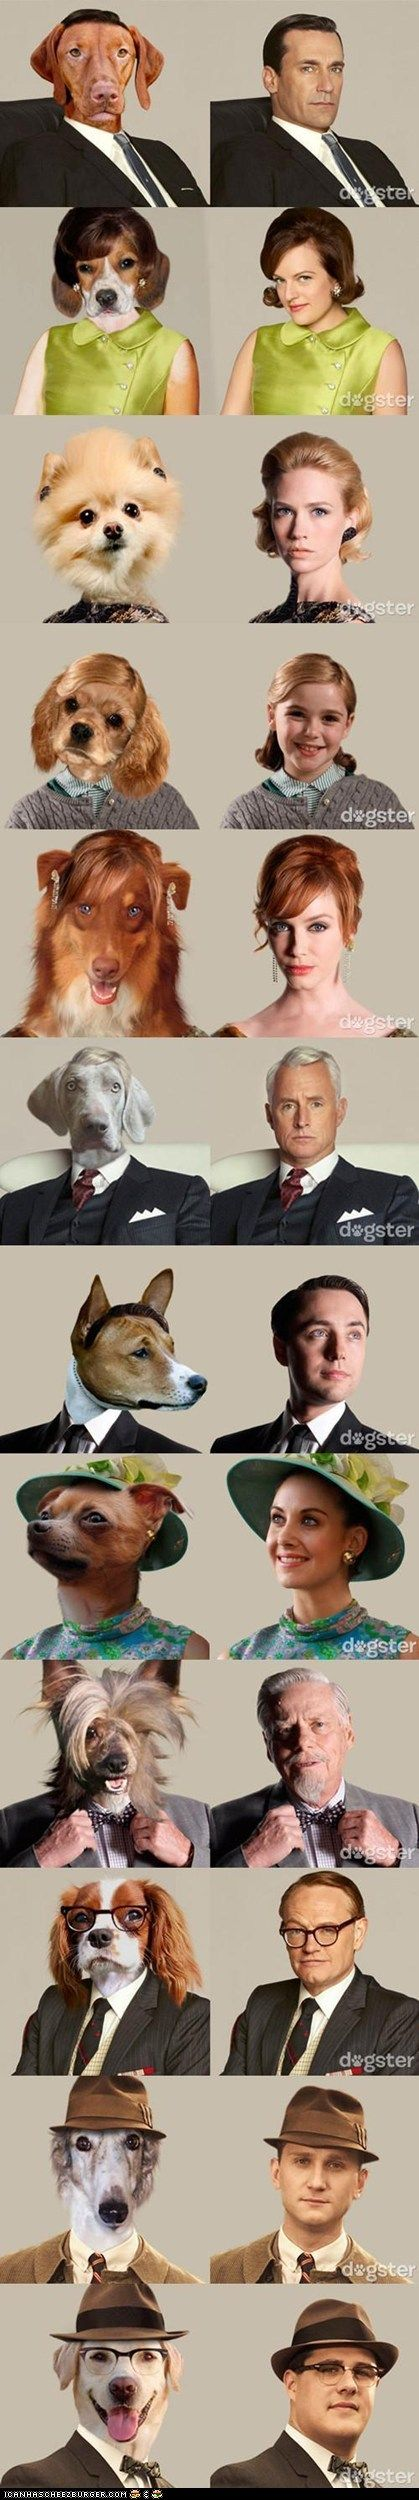 My two loves!!!! Dogs and MadmenMad Dogs, Dogs Turn, Pets, De Mad, Madmen Fashion, Funny, Mad Men, Men Character, Men Dogs